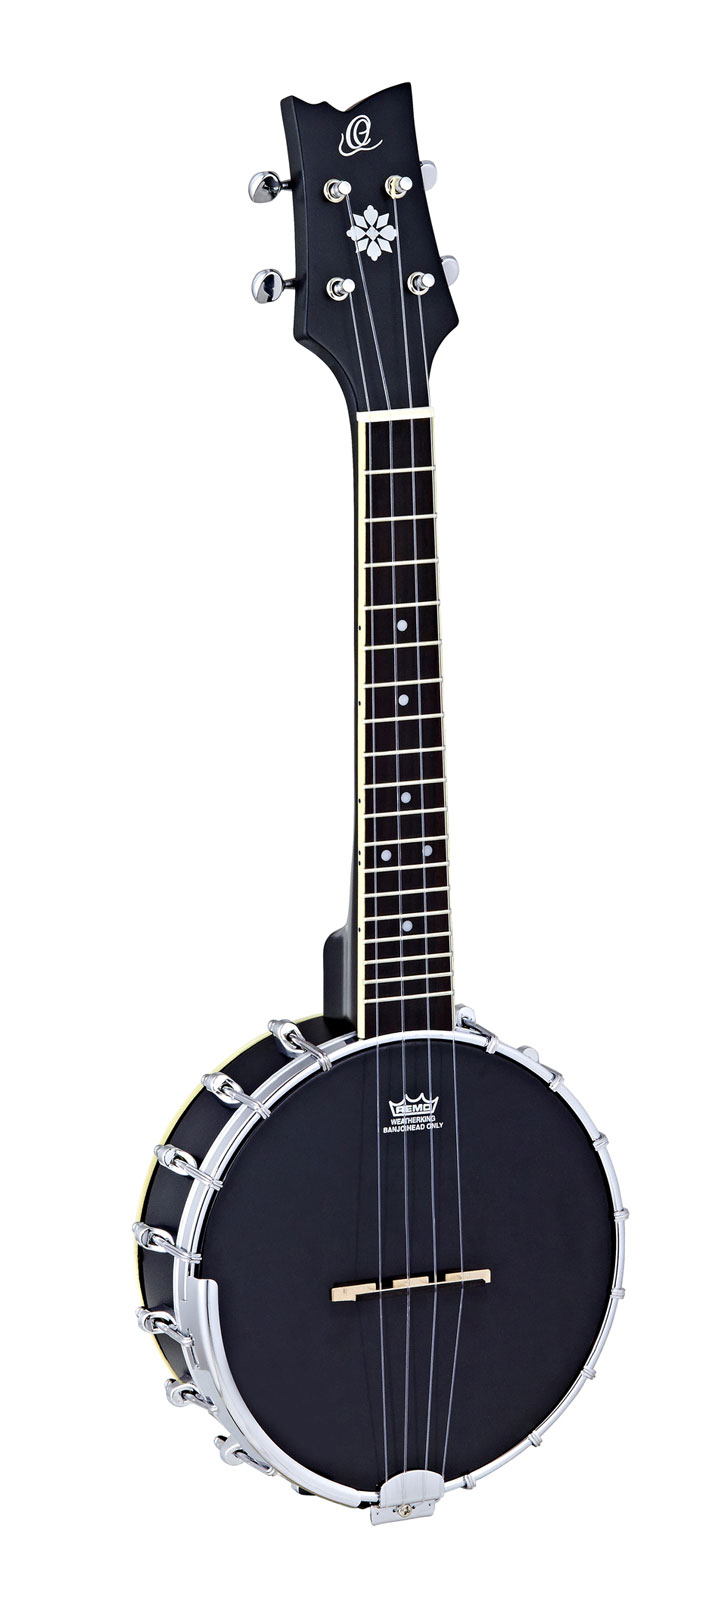 Lag concert black ukulele buy online free for Housse ukulele concert